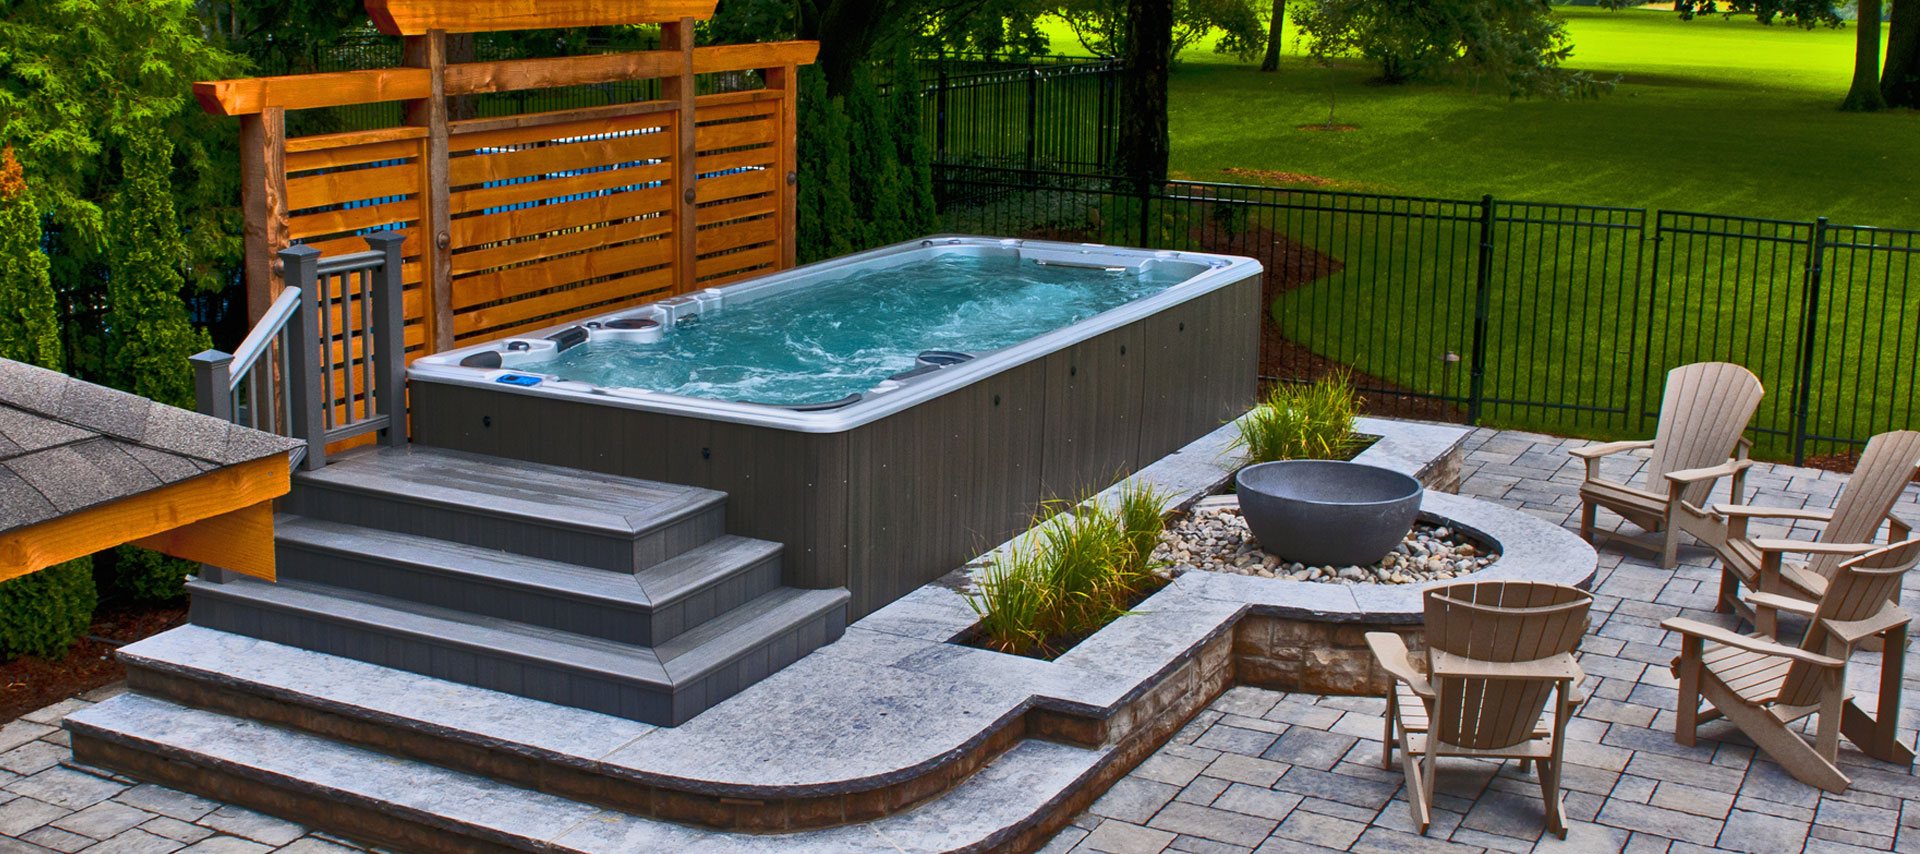 Whirlpool Outdoor Swim Spa Rainforest Outdoor Living